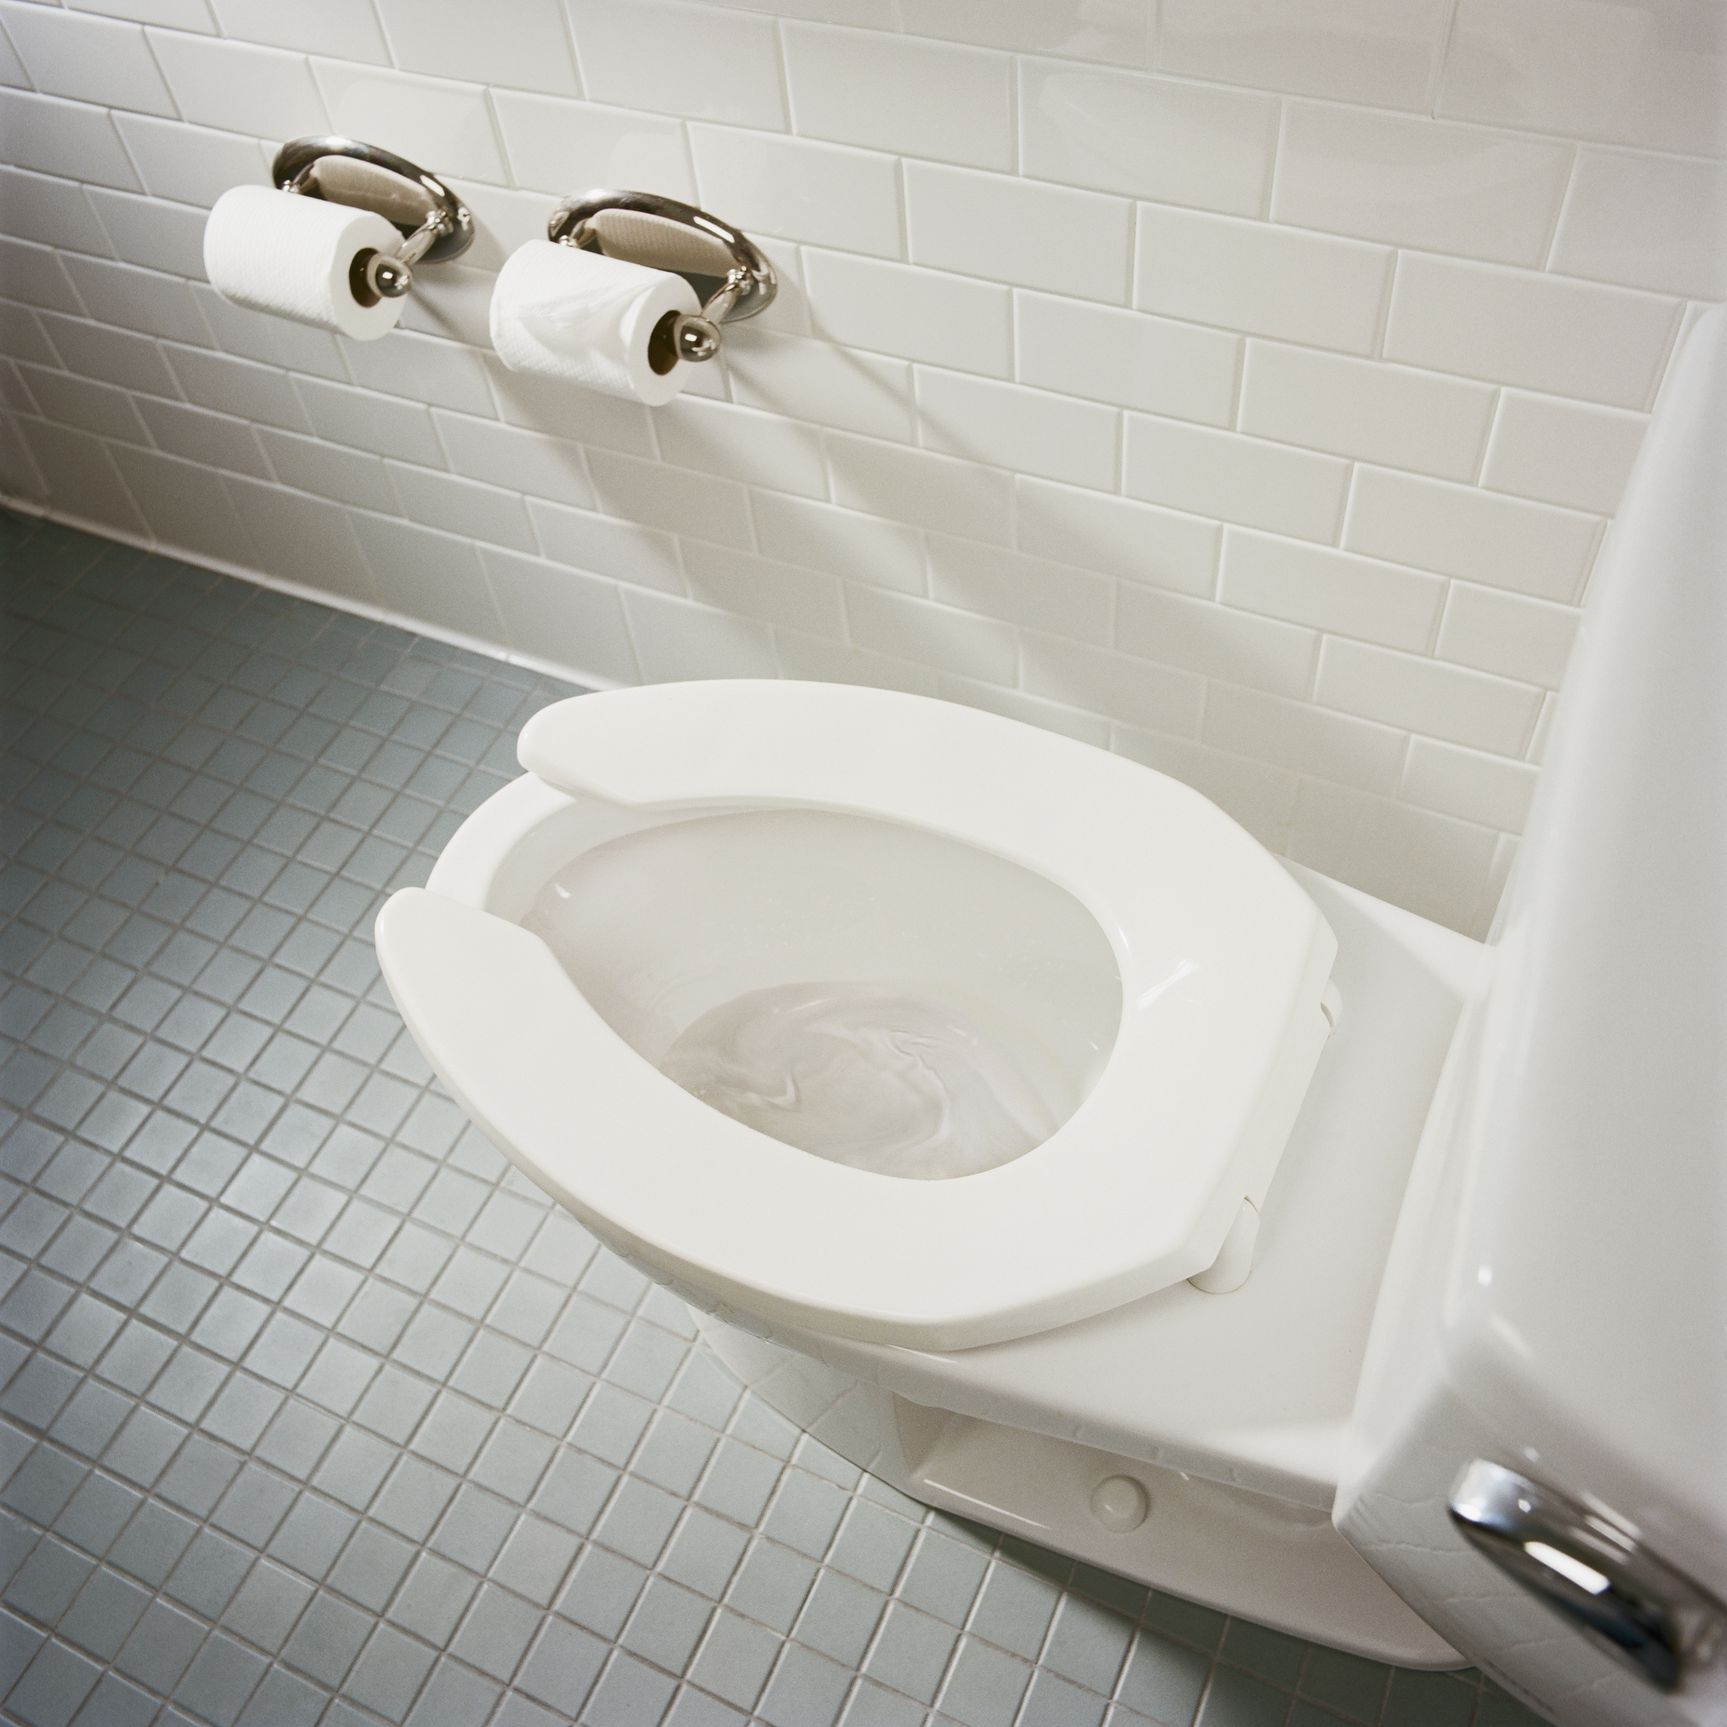 How To Properly Set A Toilet To Prevent Leaks